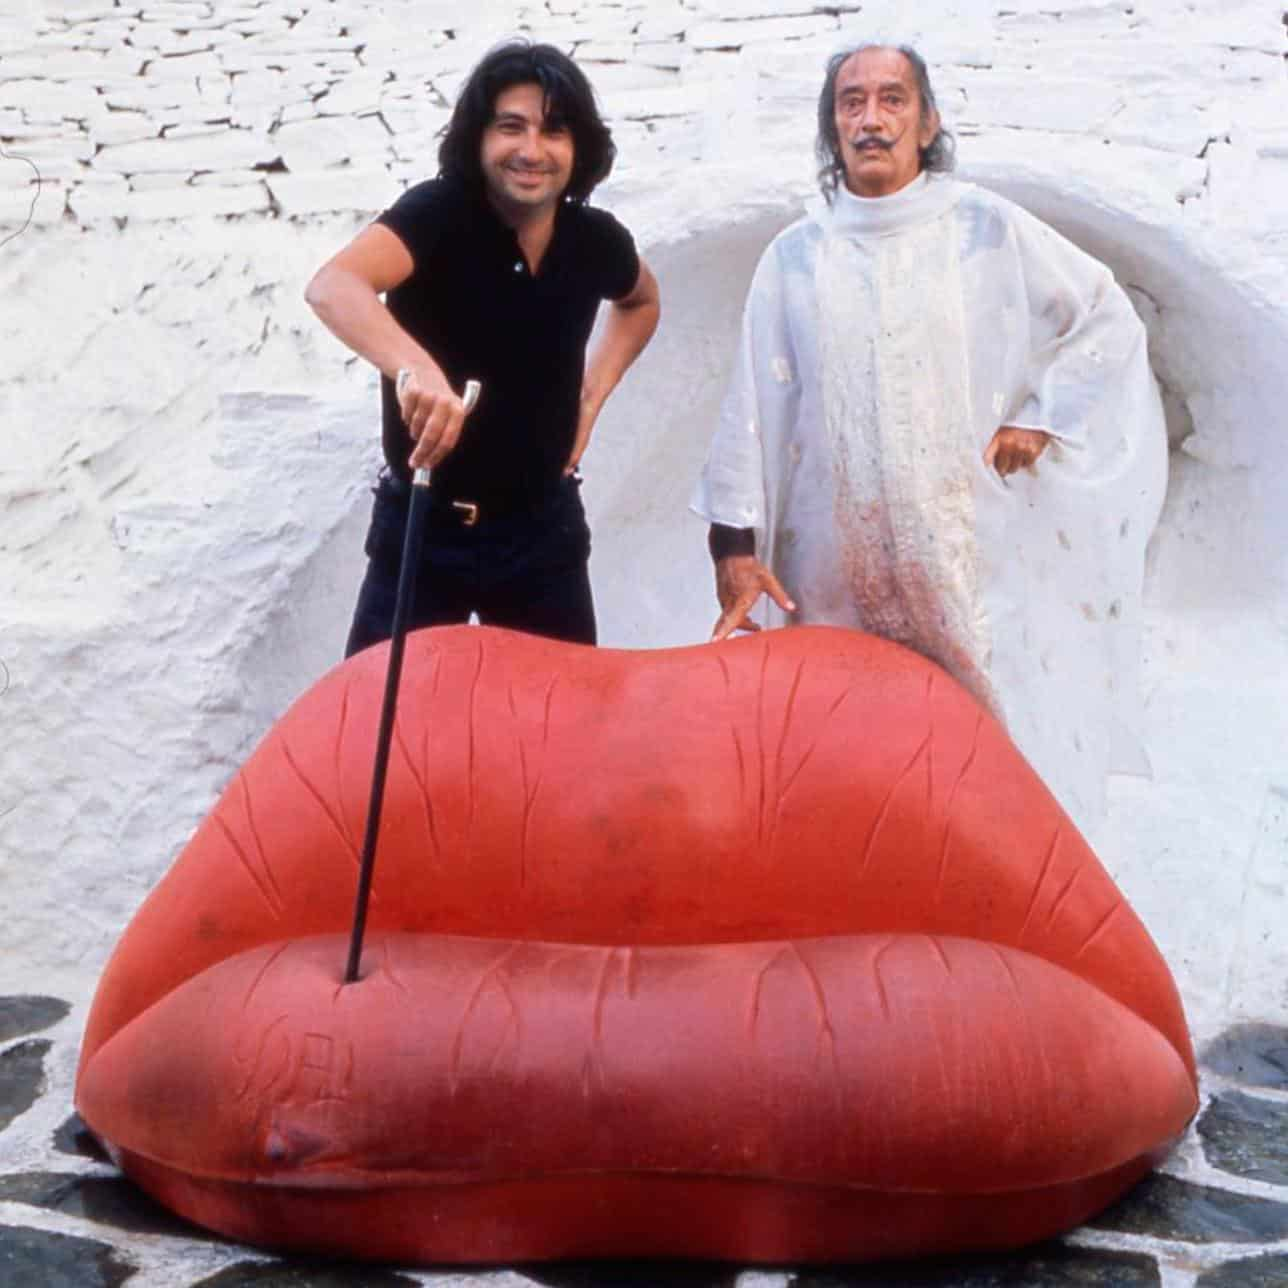 OSCAR TUSQUETS BLANCA and SALVADOR DALÍ pose behind a prototype of the Dalilips sofa.